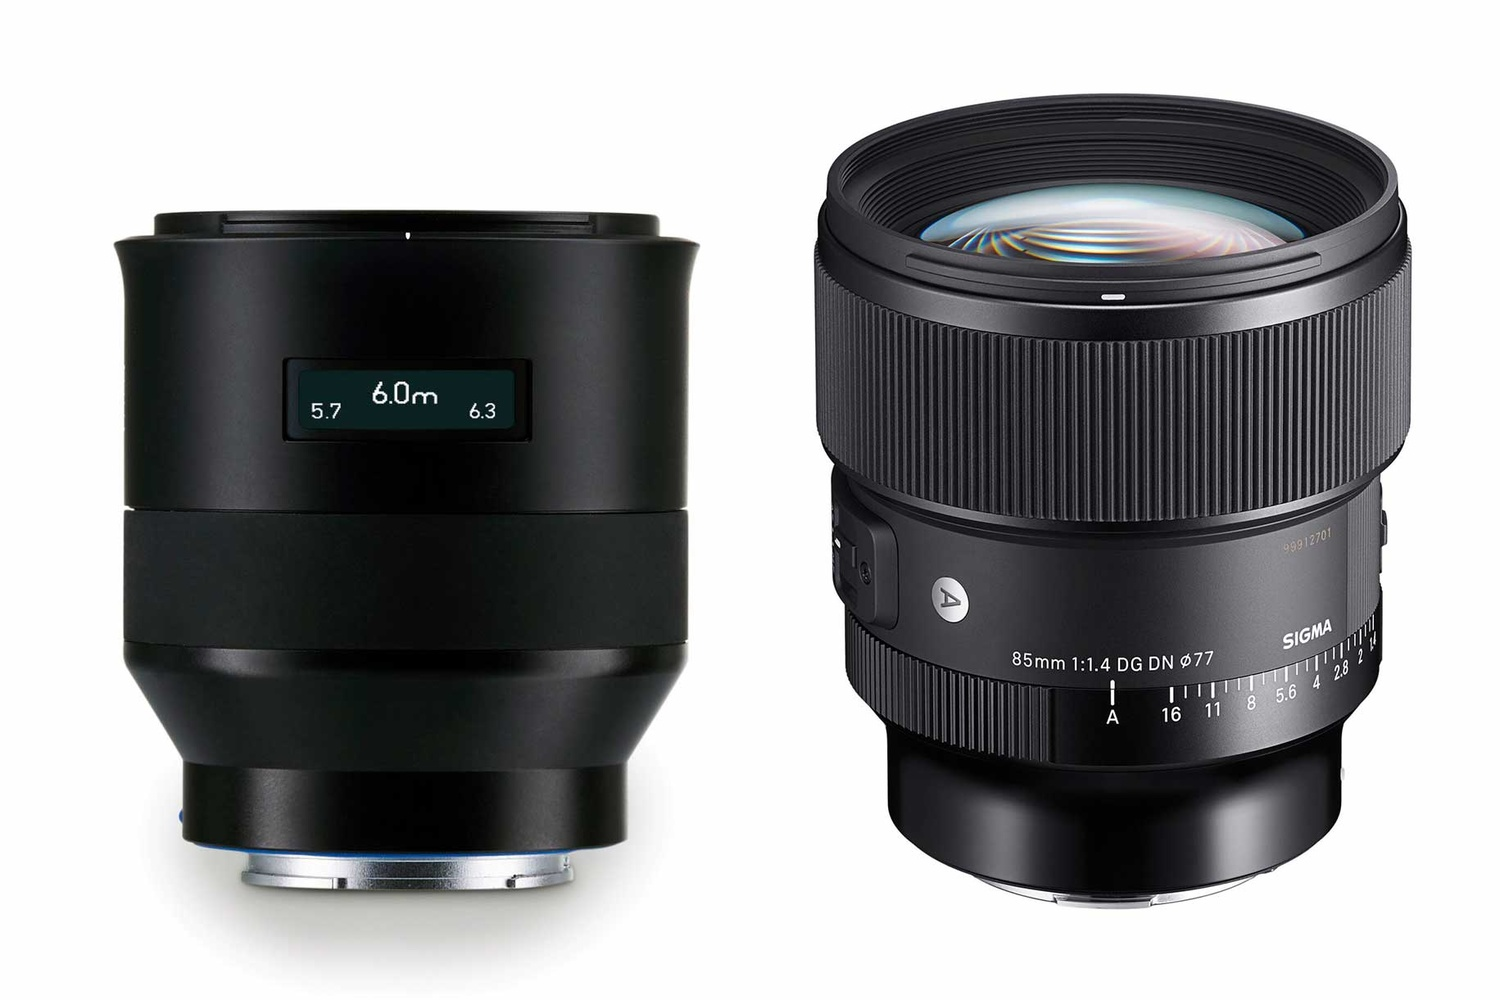 sigma 85mm art lens small lens from sigma comments fstoppers usman dawood 2020 corner sharpness zeiss batis 85mm 0